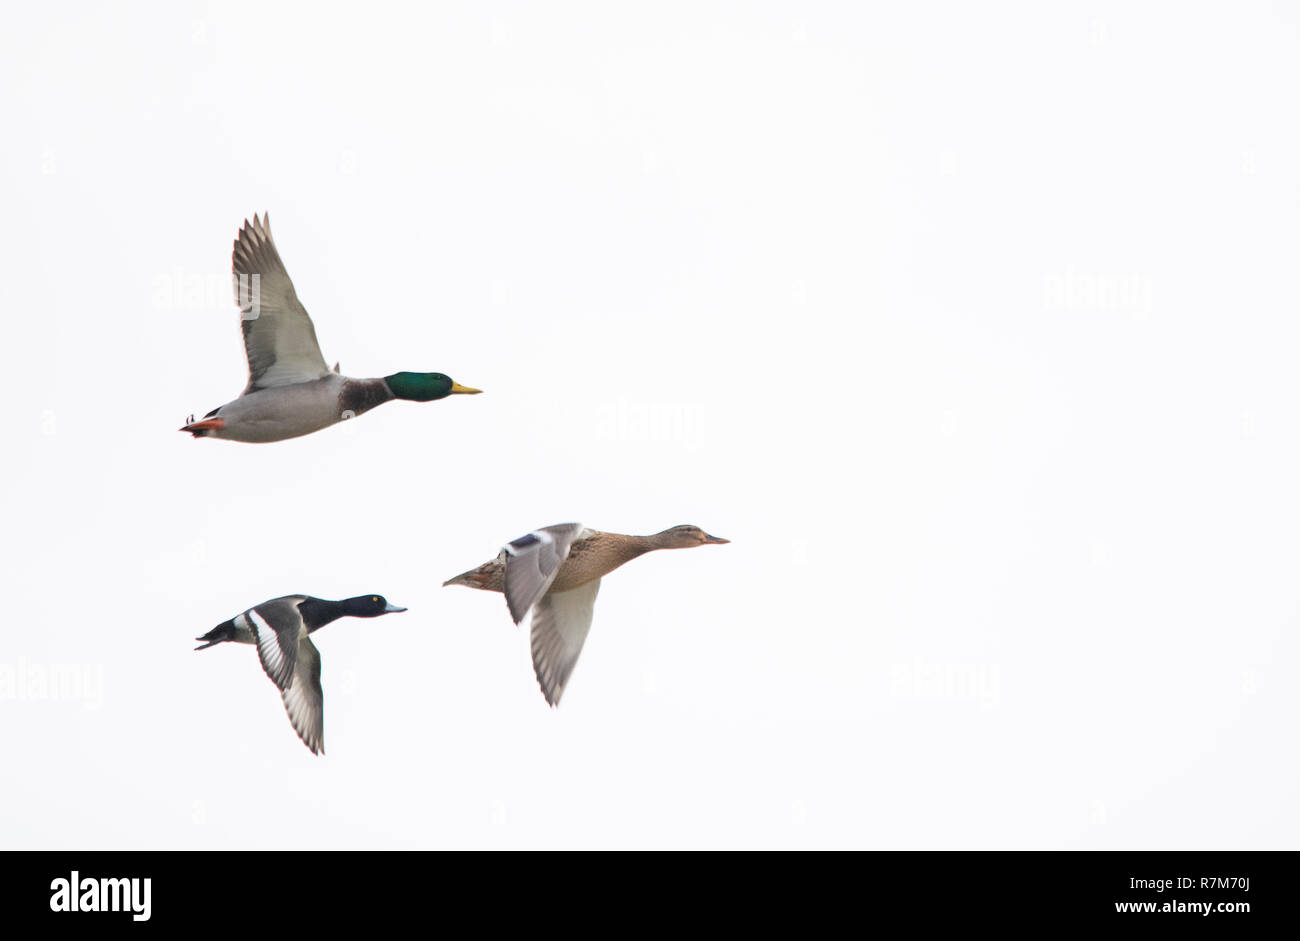 Ducks flying - Stock Image